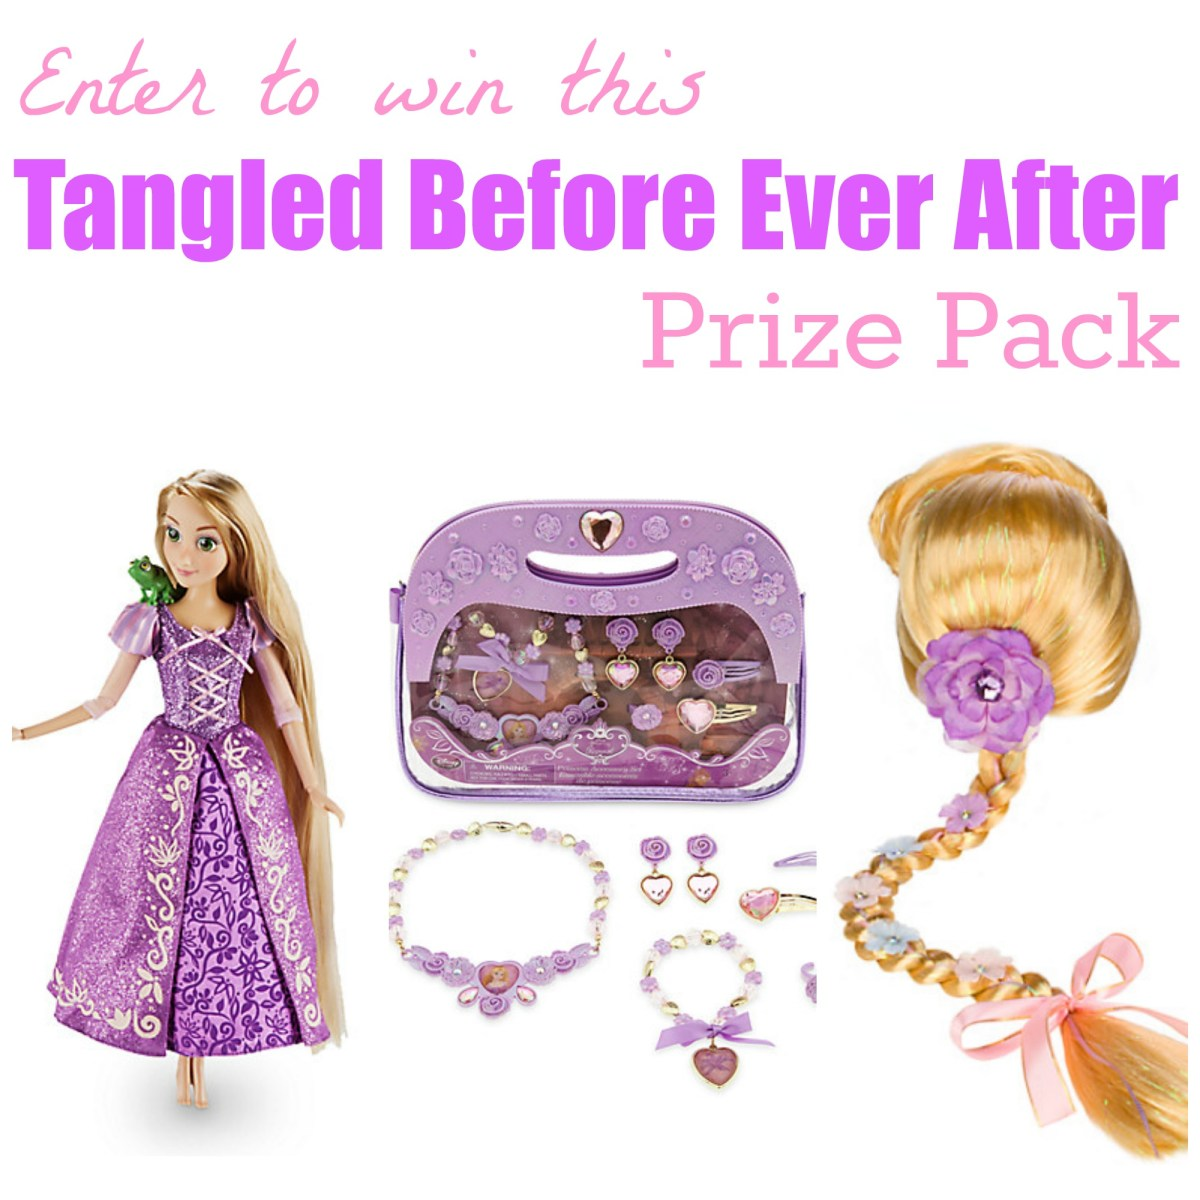 Bring Home Tangled Before Ever After on DVD